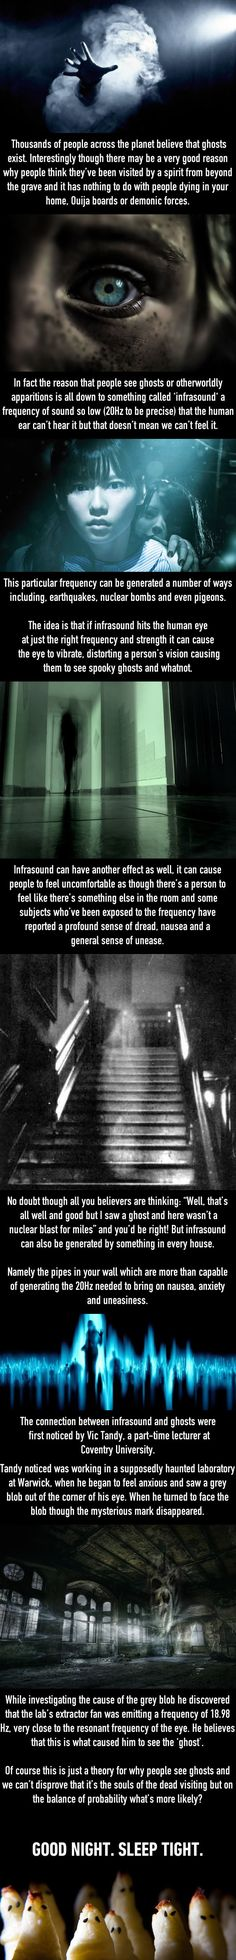 Scientists Vic Tandy At Coventry University May Have Found An Explanation For Ghosts